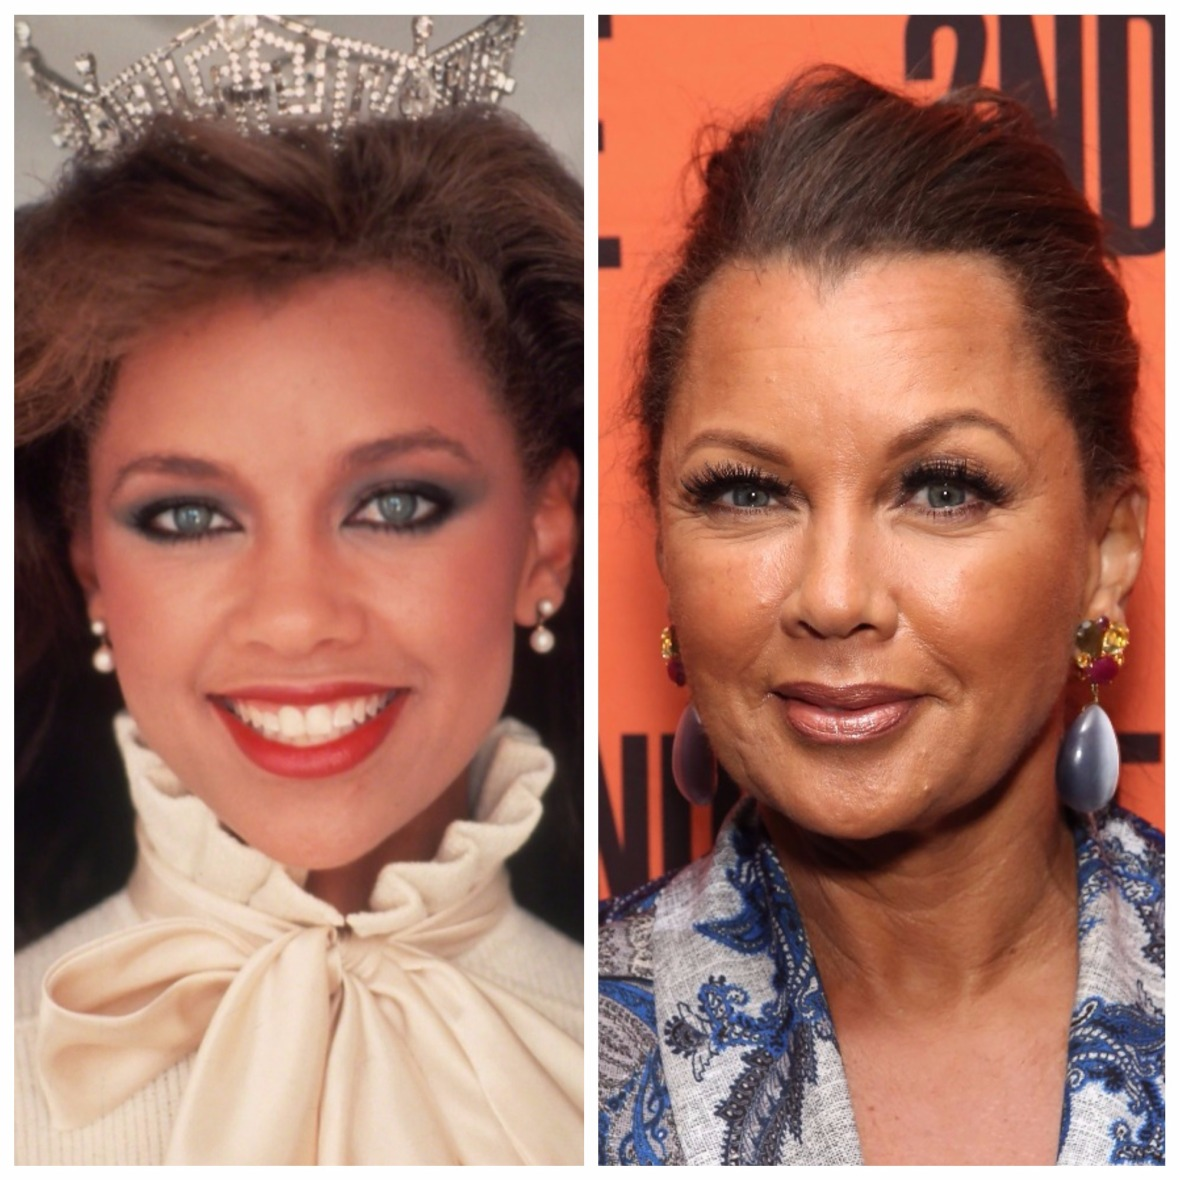 vanessa williams then and now getty